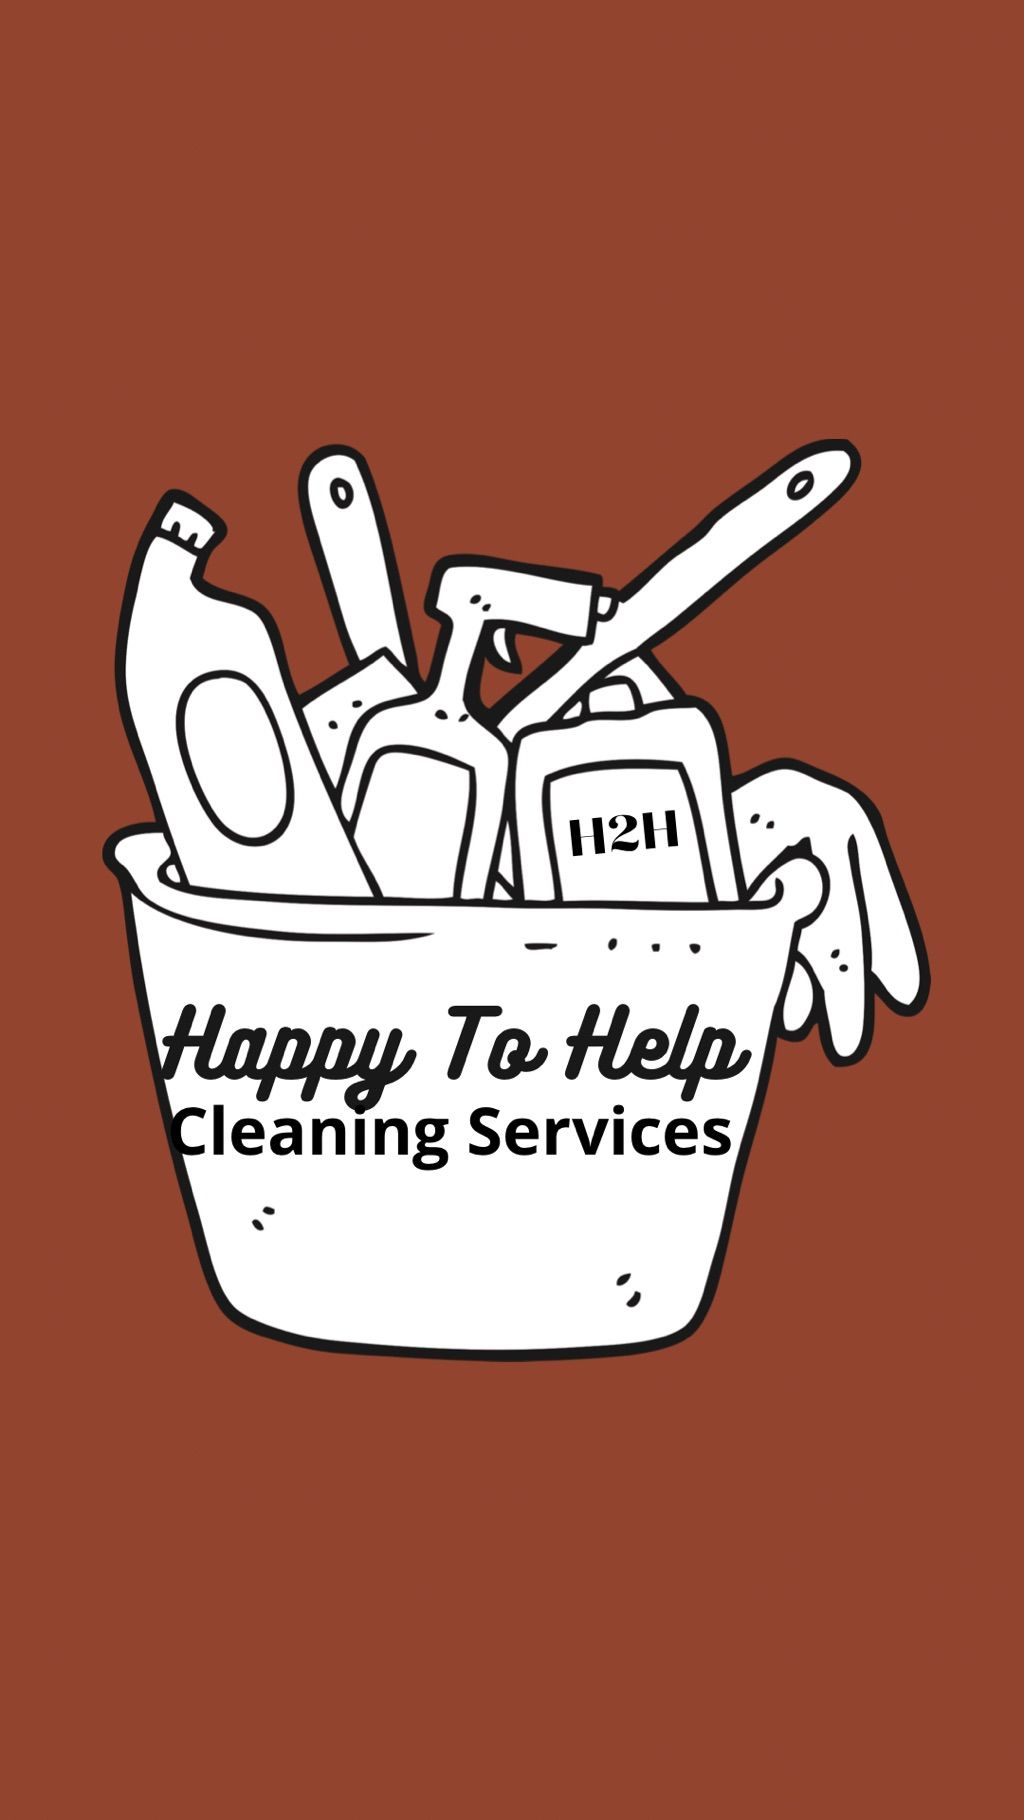 Happy To Help Cleaning